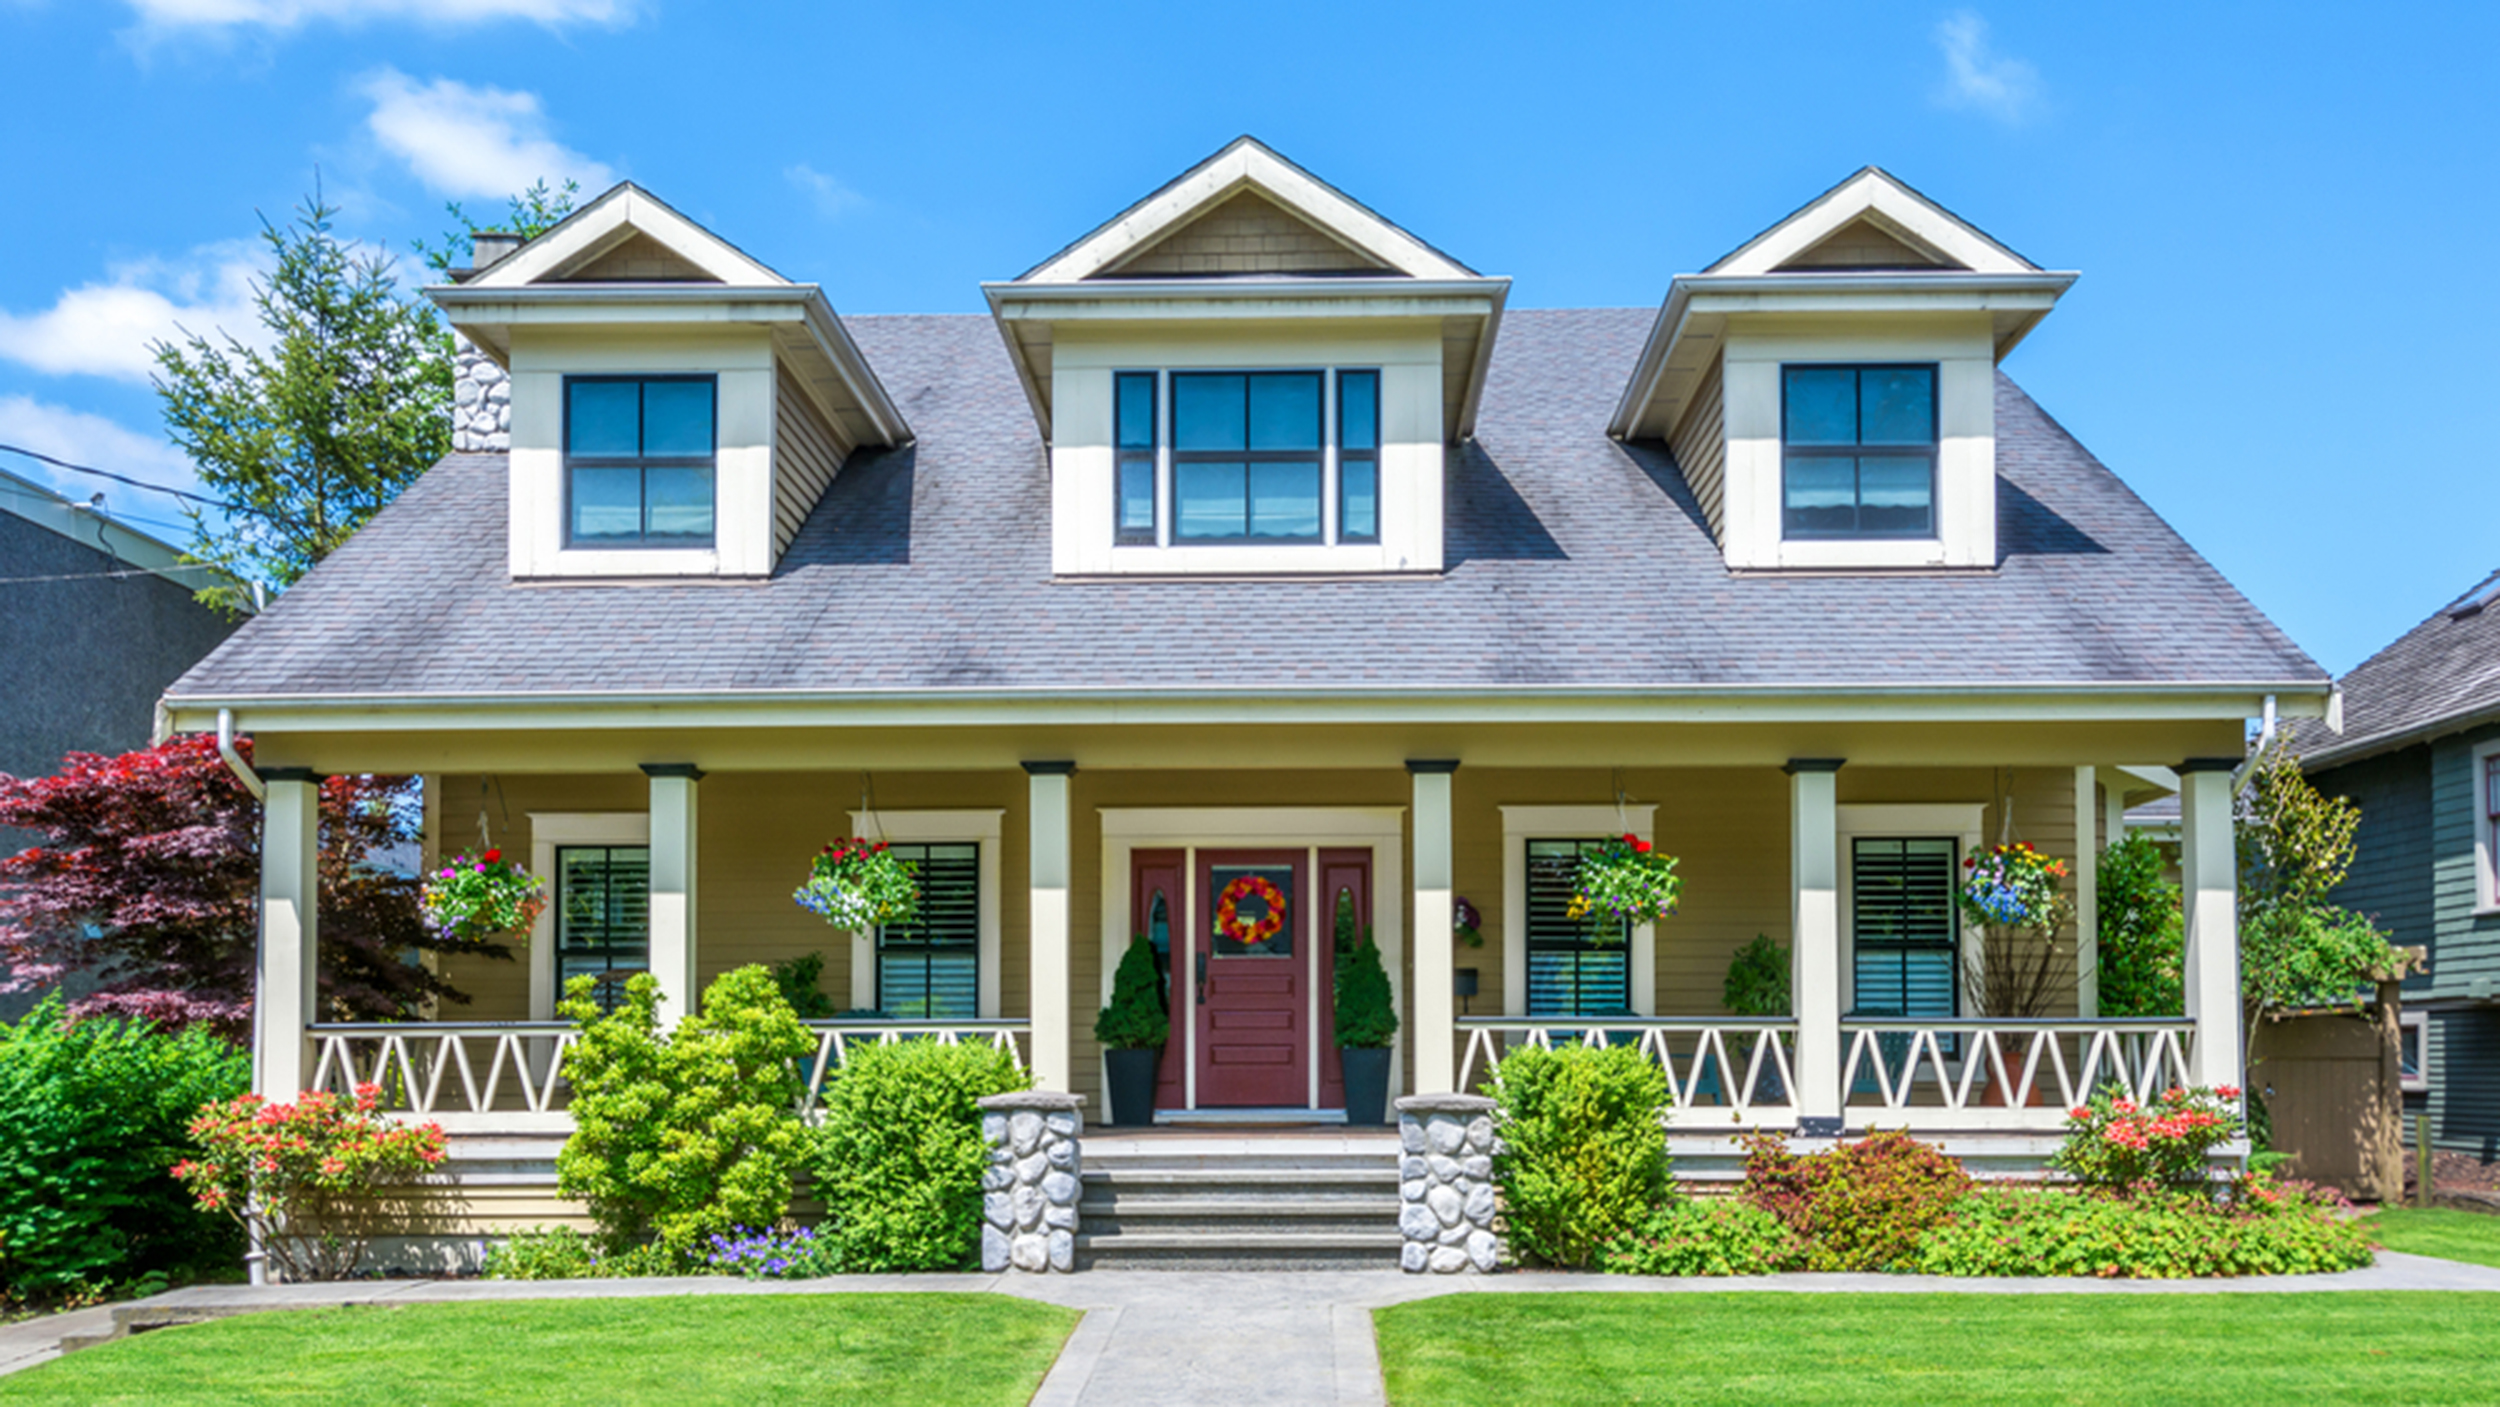 /home Market Could Stabilize As More Homes Are Listed